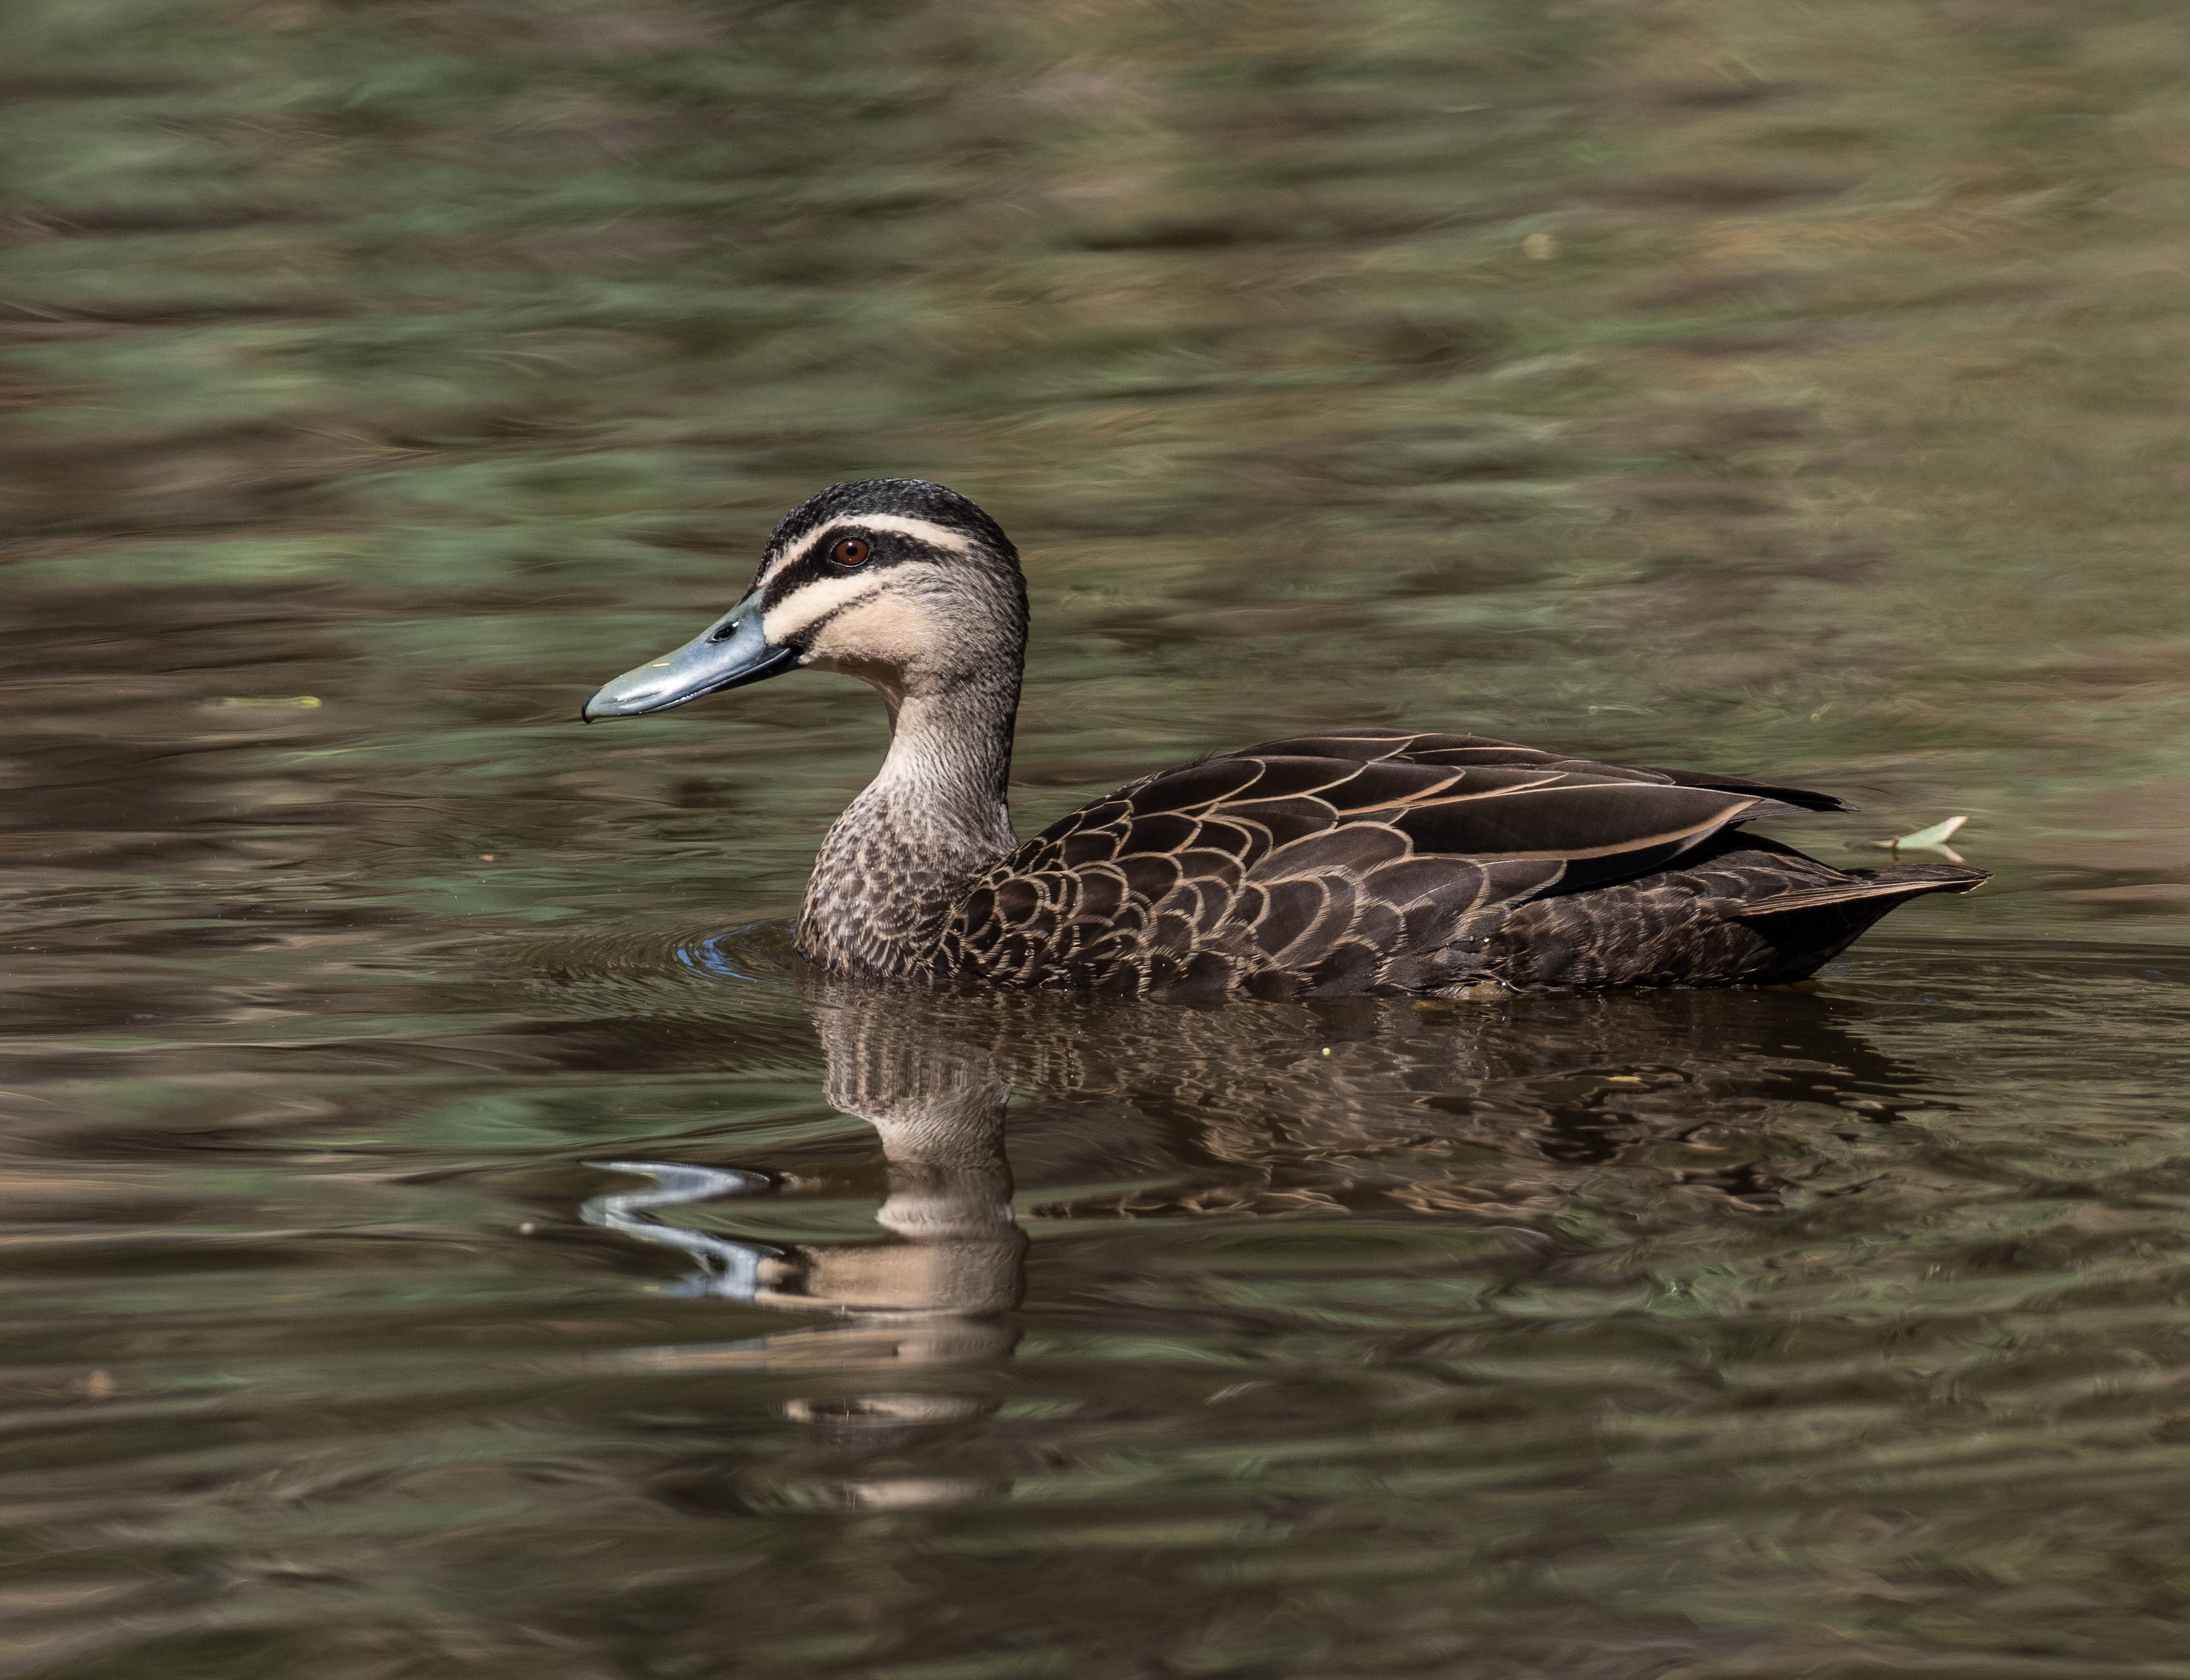 Pacific Black Duck - Bevan Hood